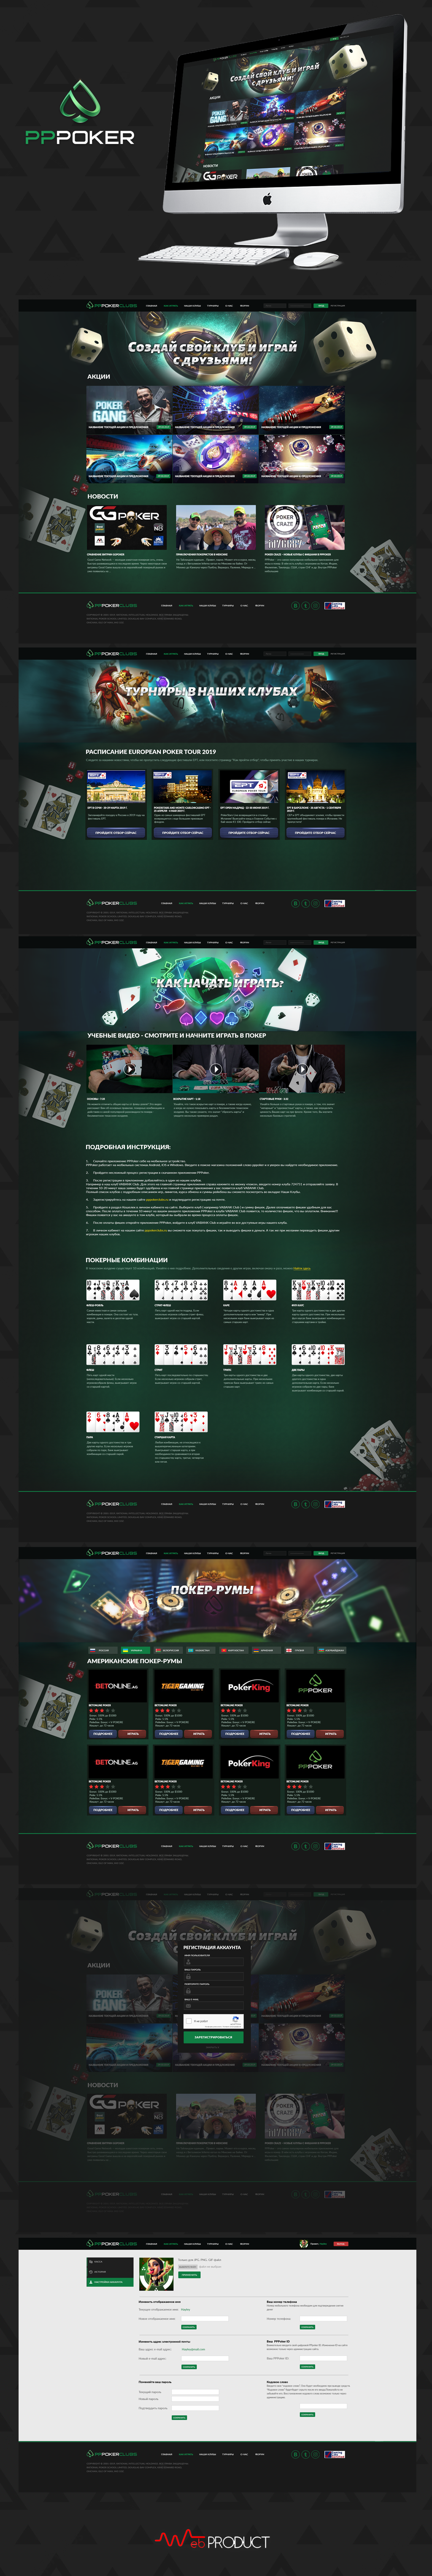 Poker Web Project   http://pokerclub.webworld.studio  Login:user Pass:dev